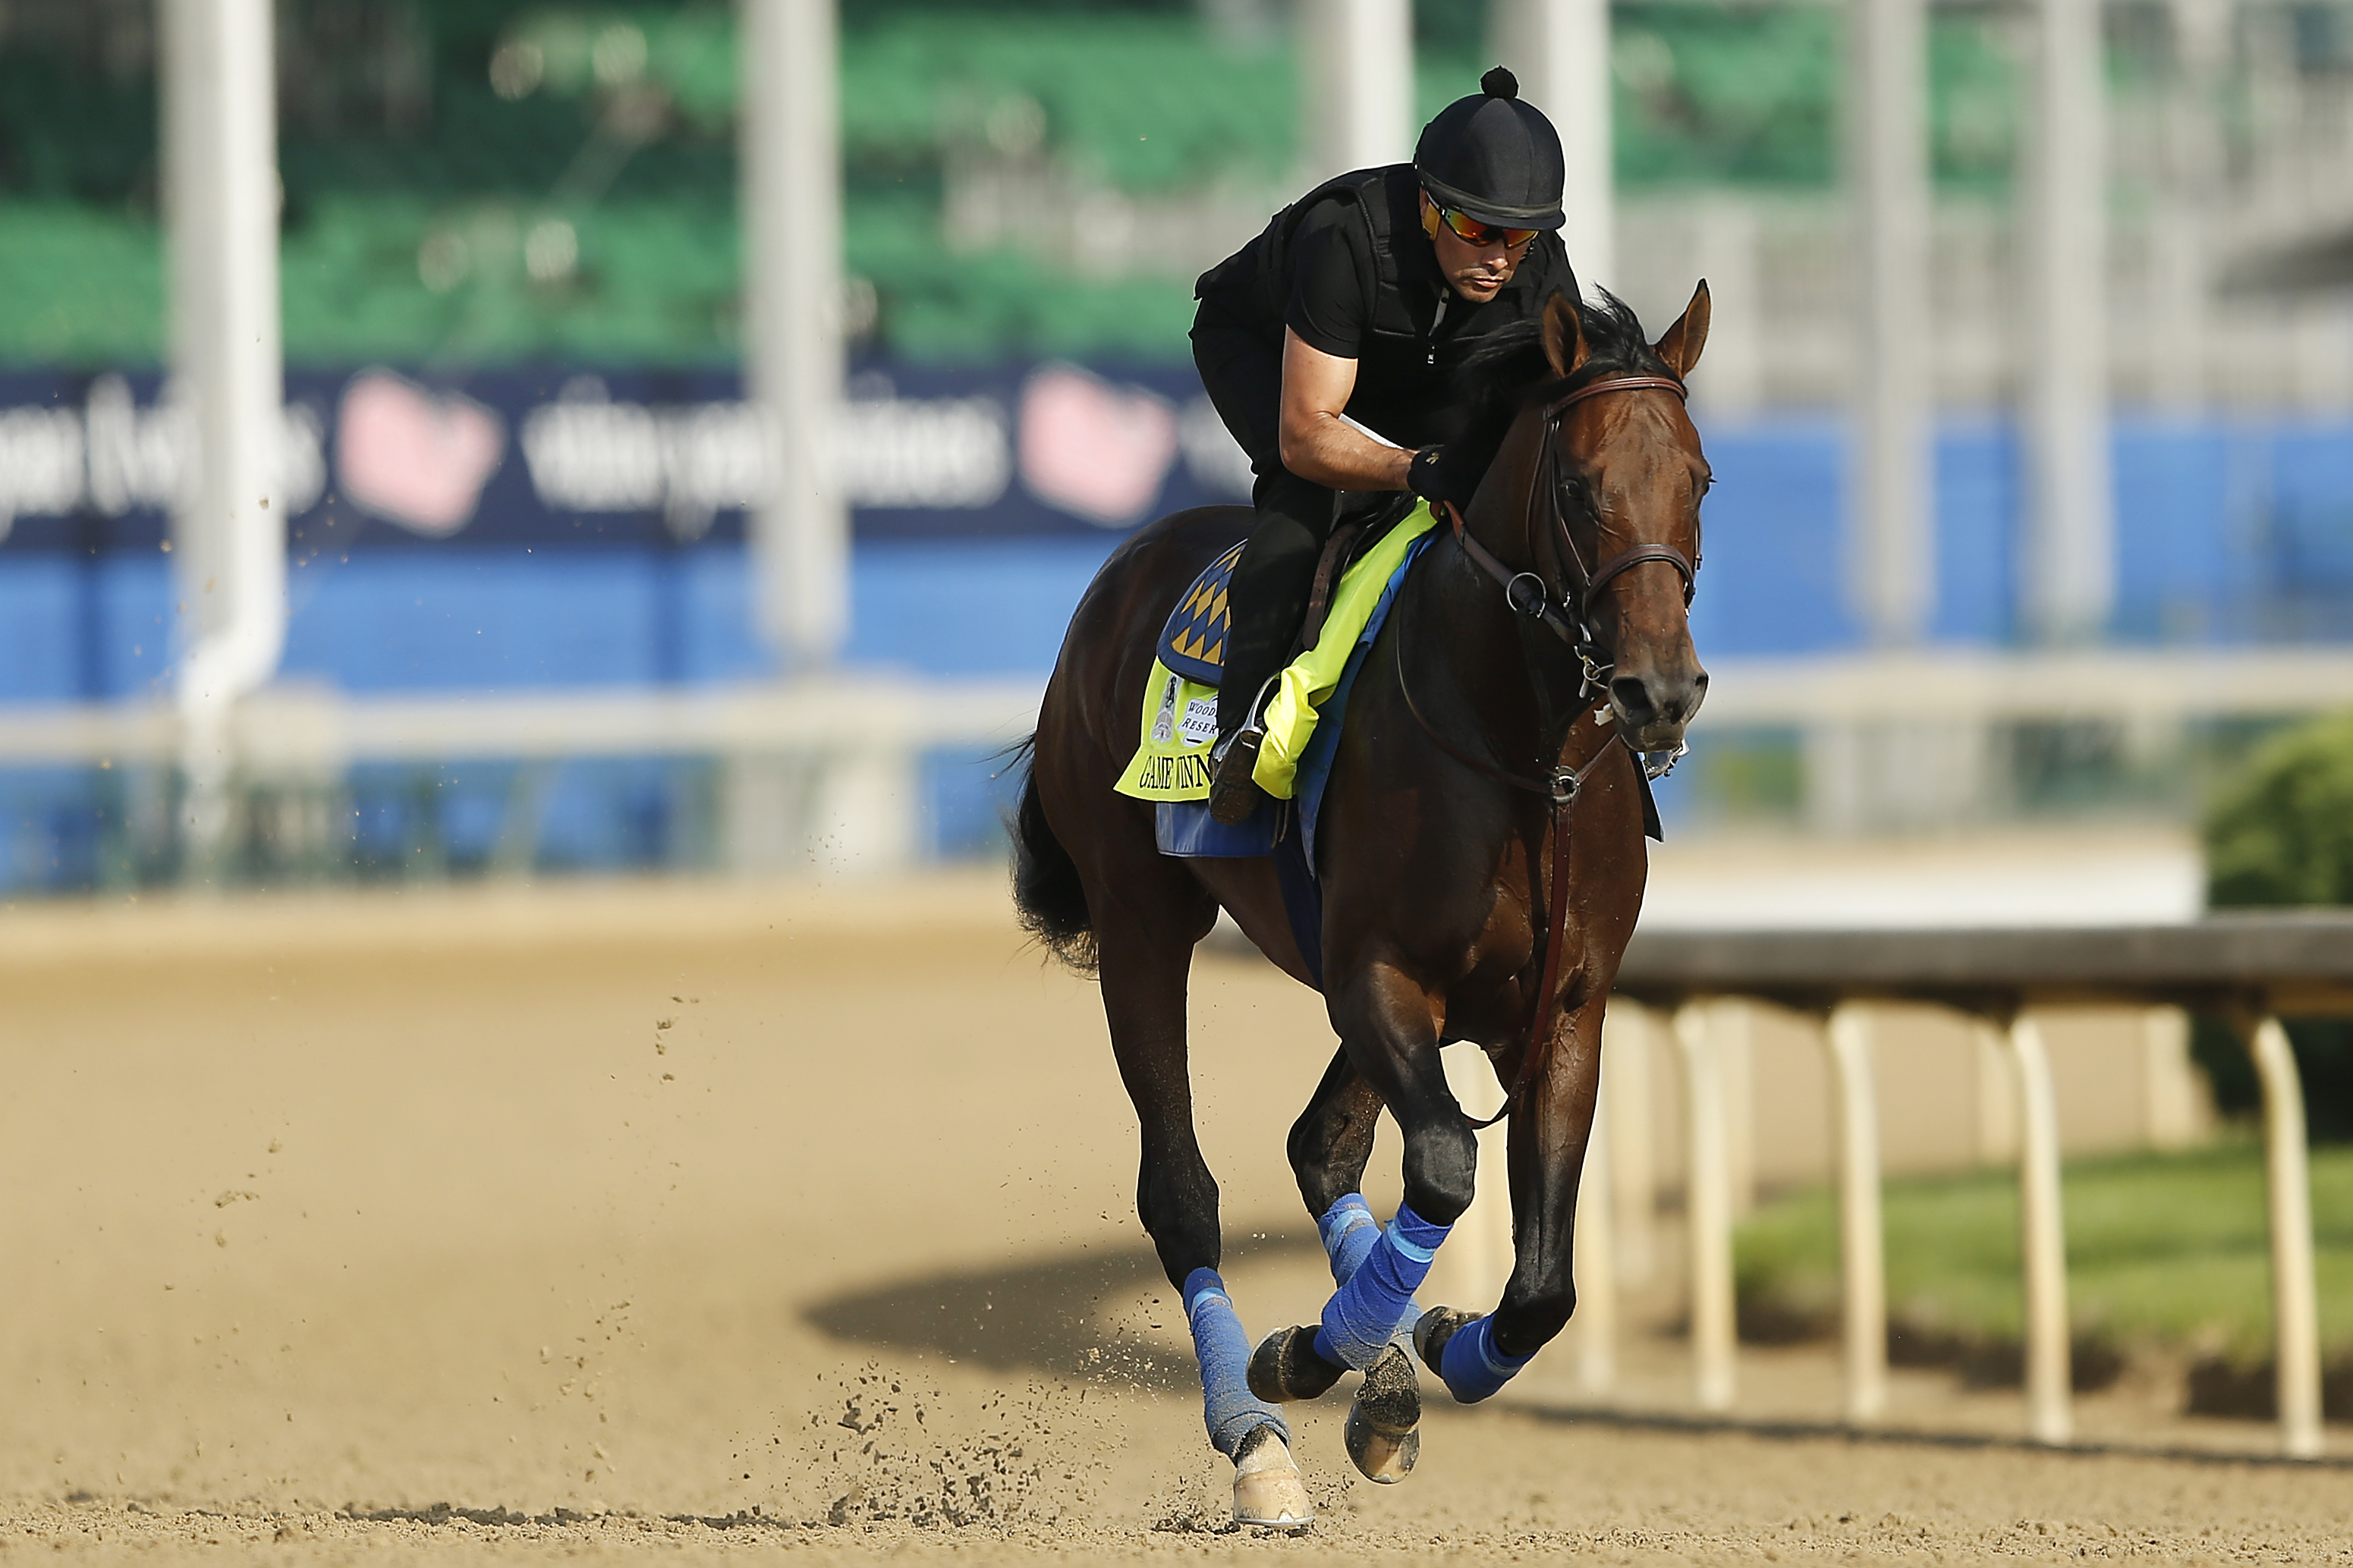 Kentucky Derby 2019: What Time, How to Watch, Odds, Favorite